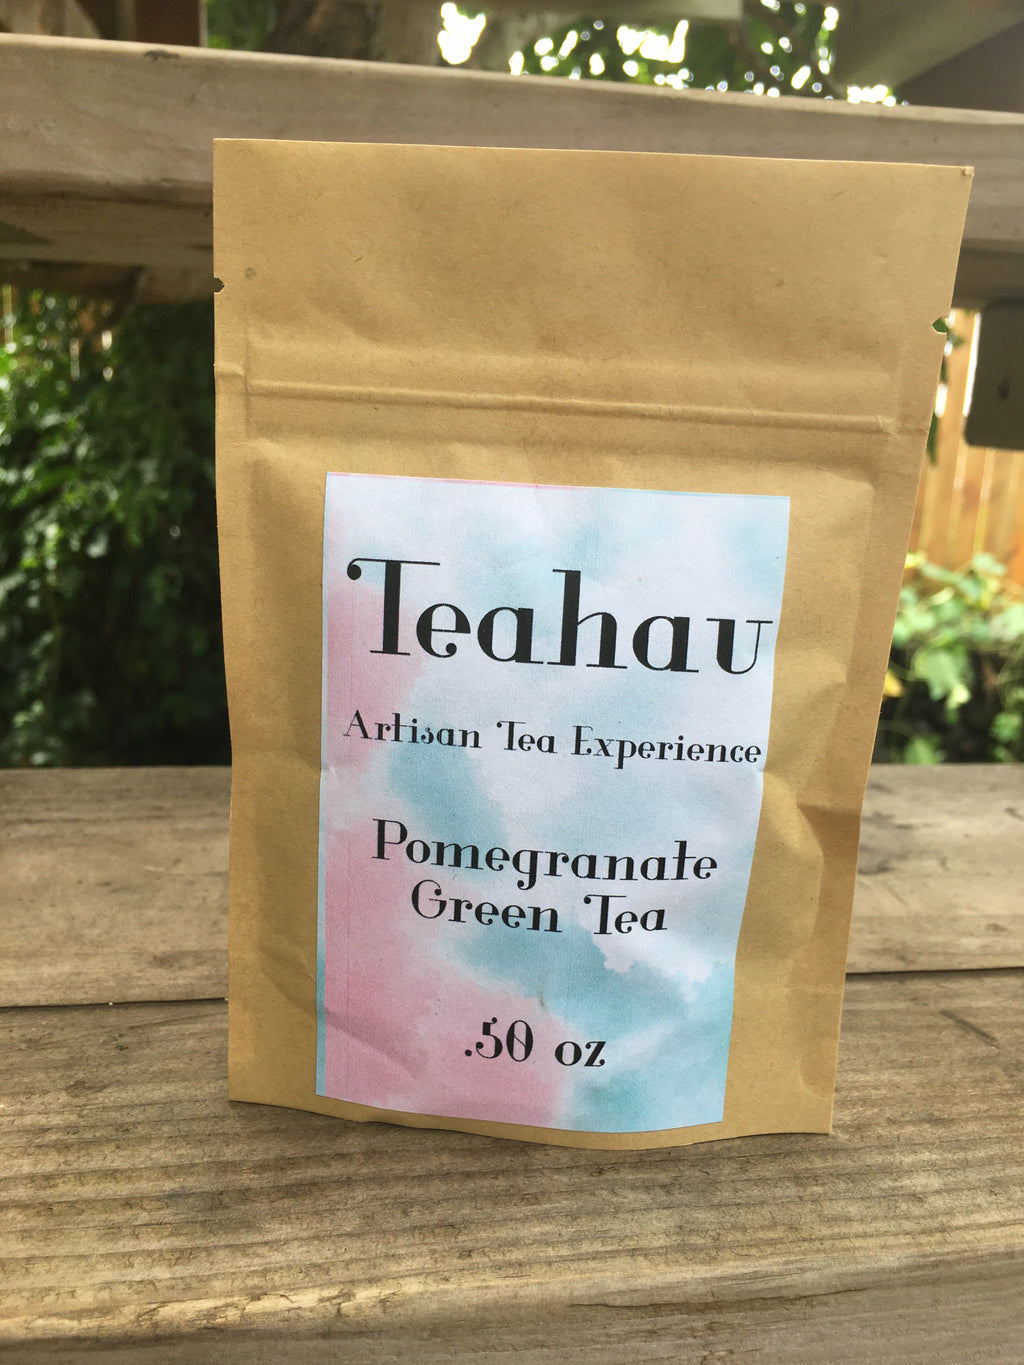 Pomagranate Green Tea .50 oz